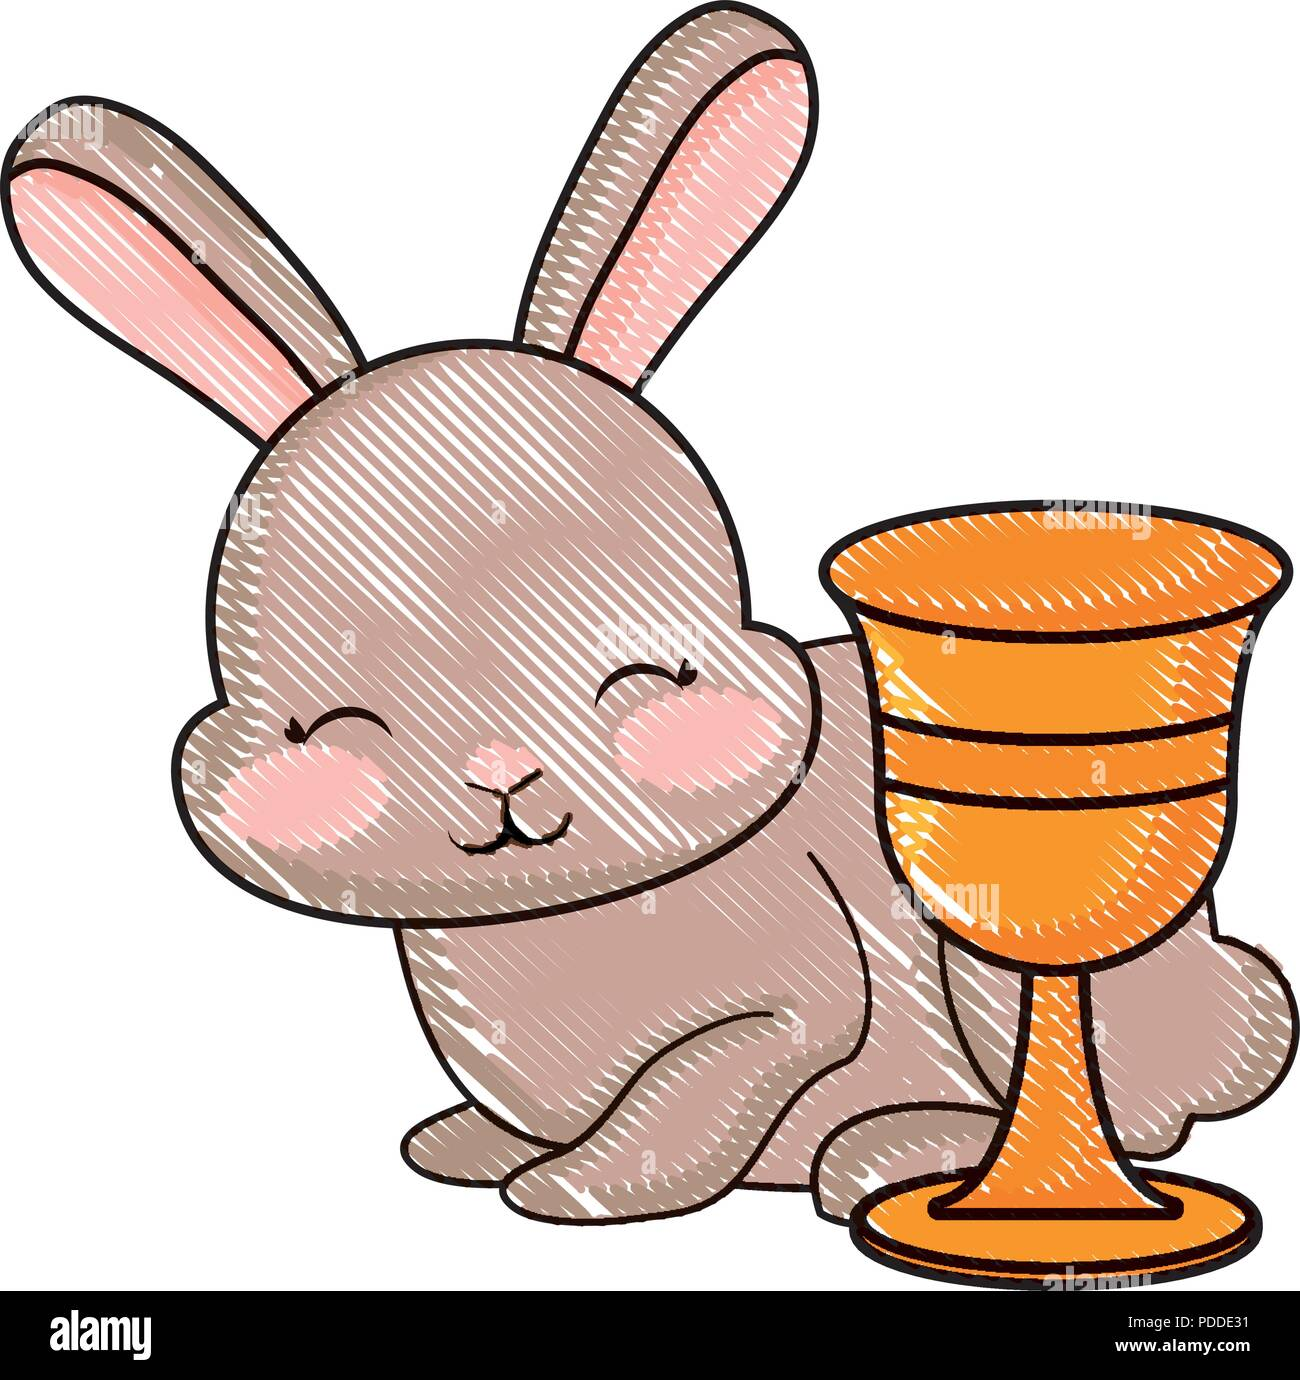 Holy Chalice Jesus Stock Photos & Holy Chalice Jesus Stock Images ...